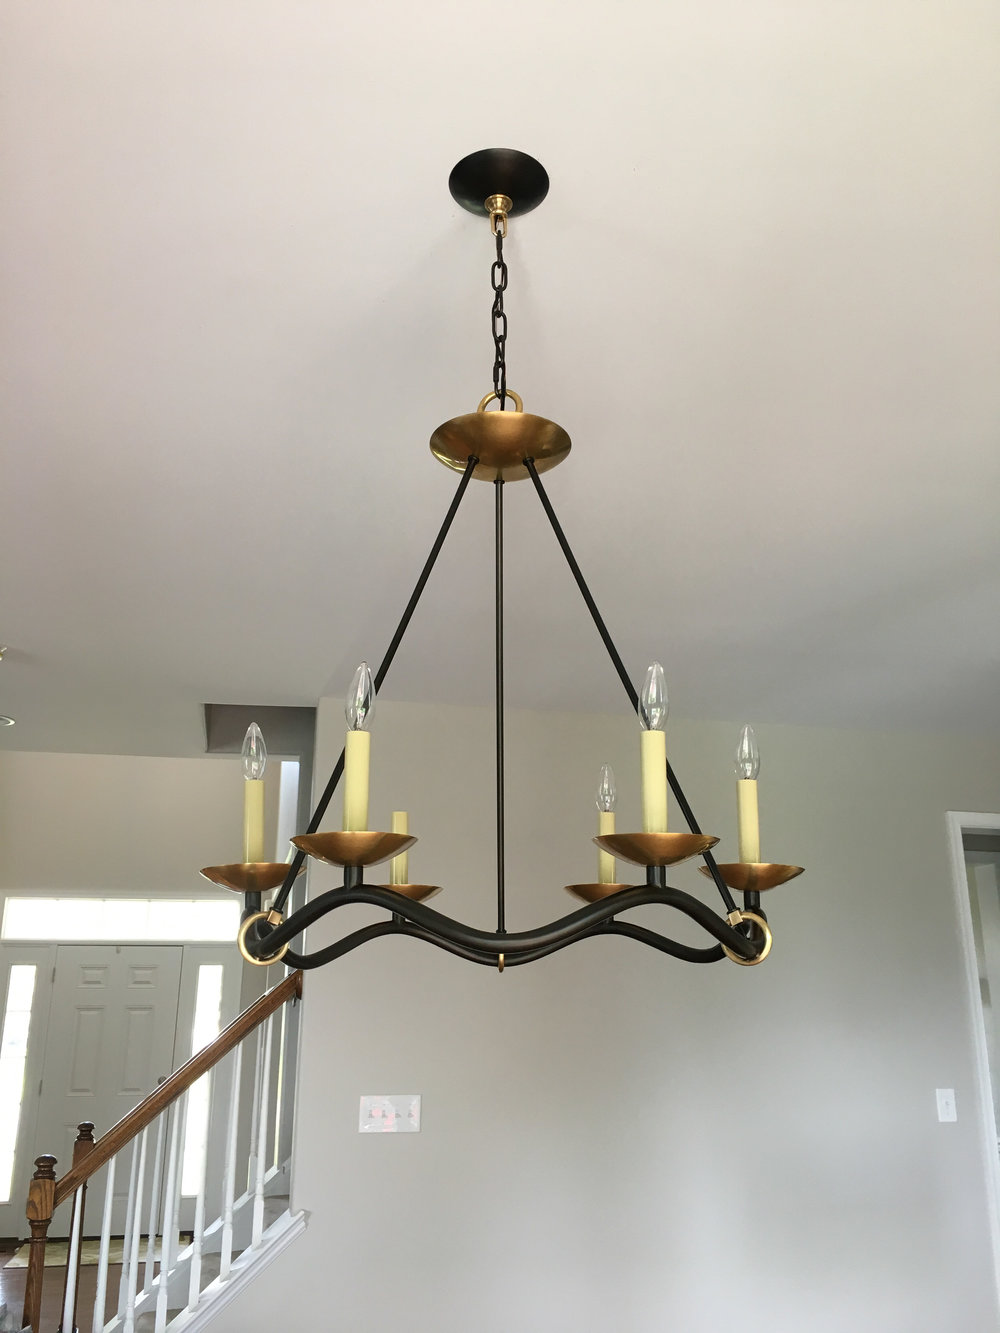 Iron and brass chandelier over the new eat-in kitchen table